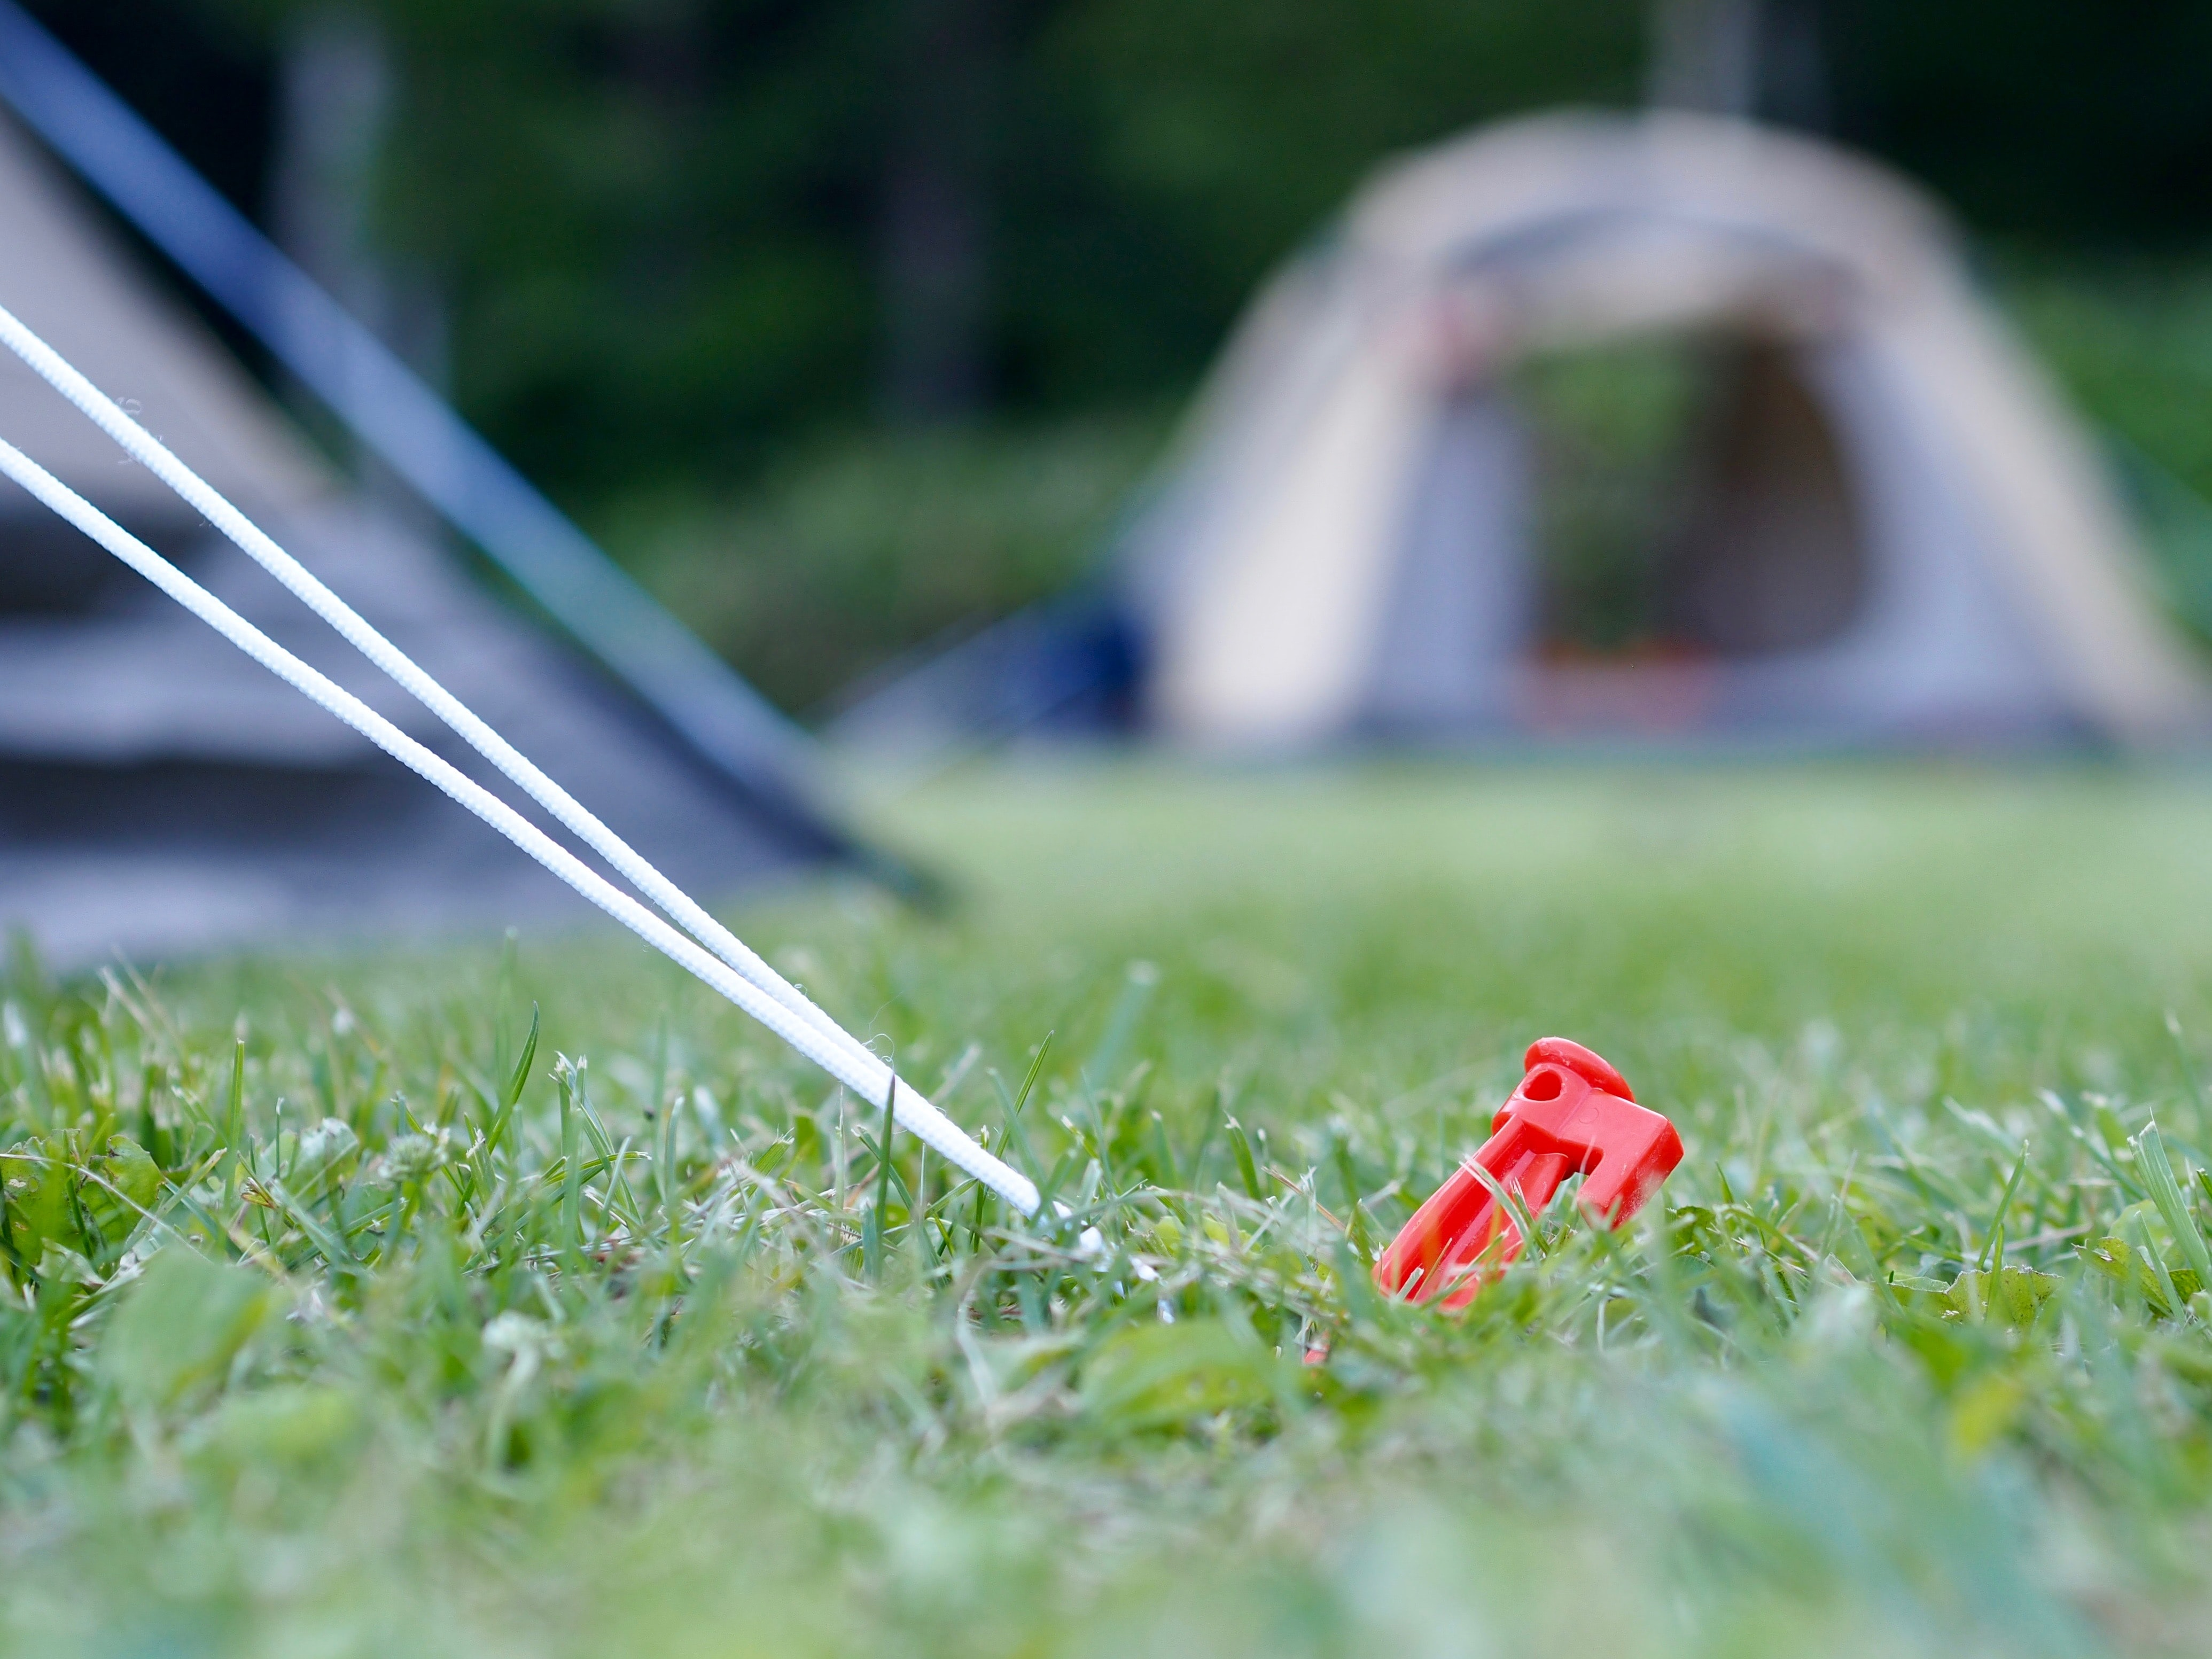 selective focus photography of red plastic tool in green grass field